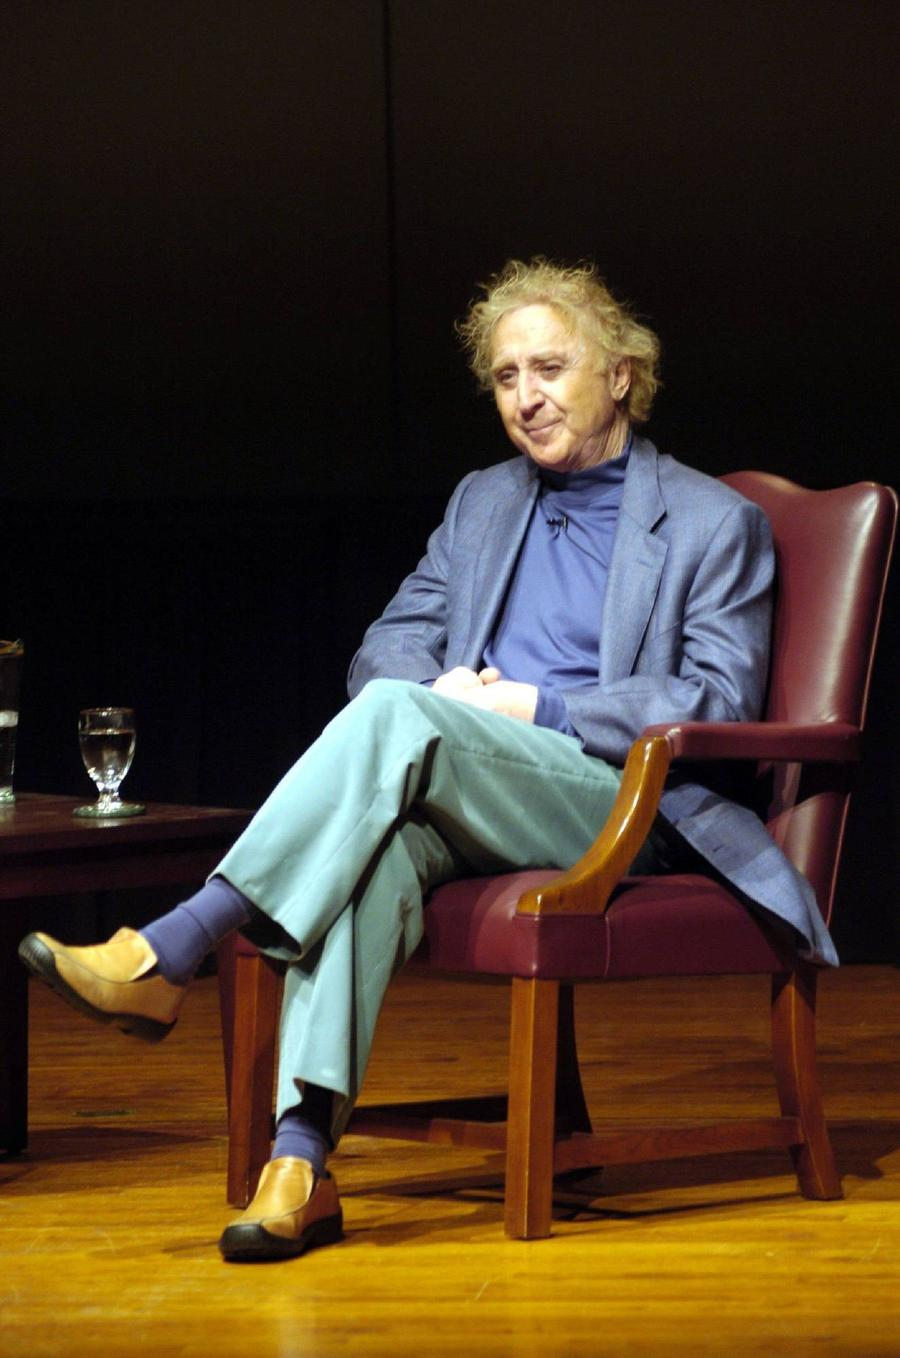 Gene Wilder Films Re-released At Cinemas To Honour Late Star